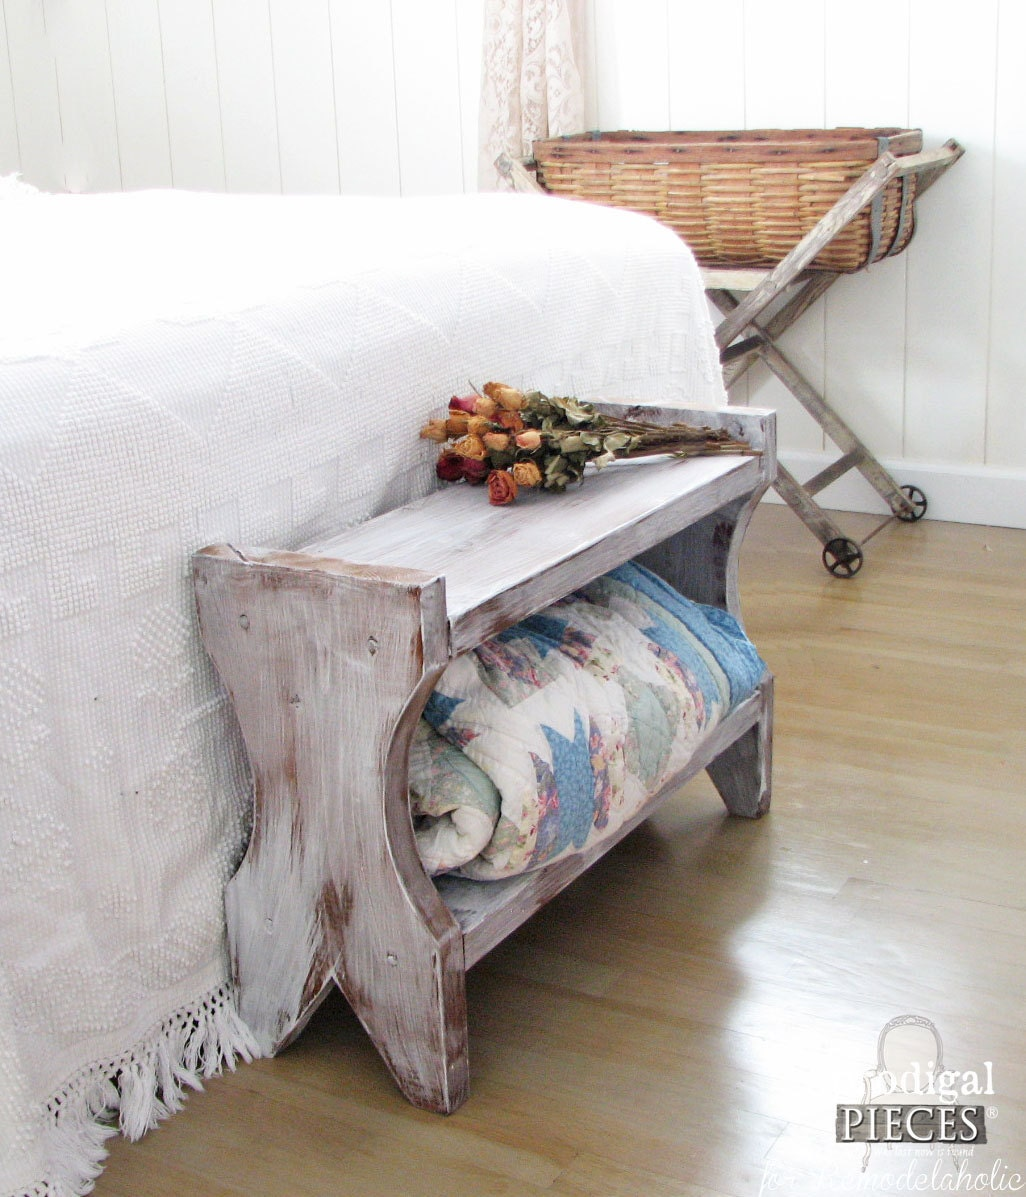 Bedroom Bench Home Goods Rustic Bedroom Furniture Sets Bedroom Dresser Accessories Bedroom Furniture Tv Stand: Handcrafted Farmhouse Entry Bedroom Bench With Storage